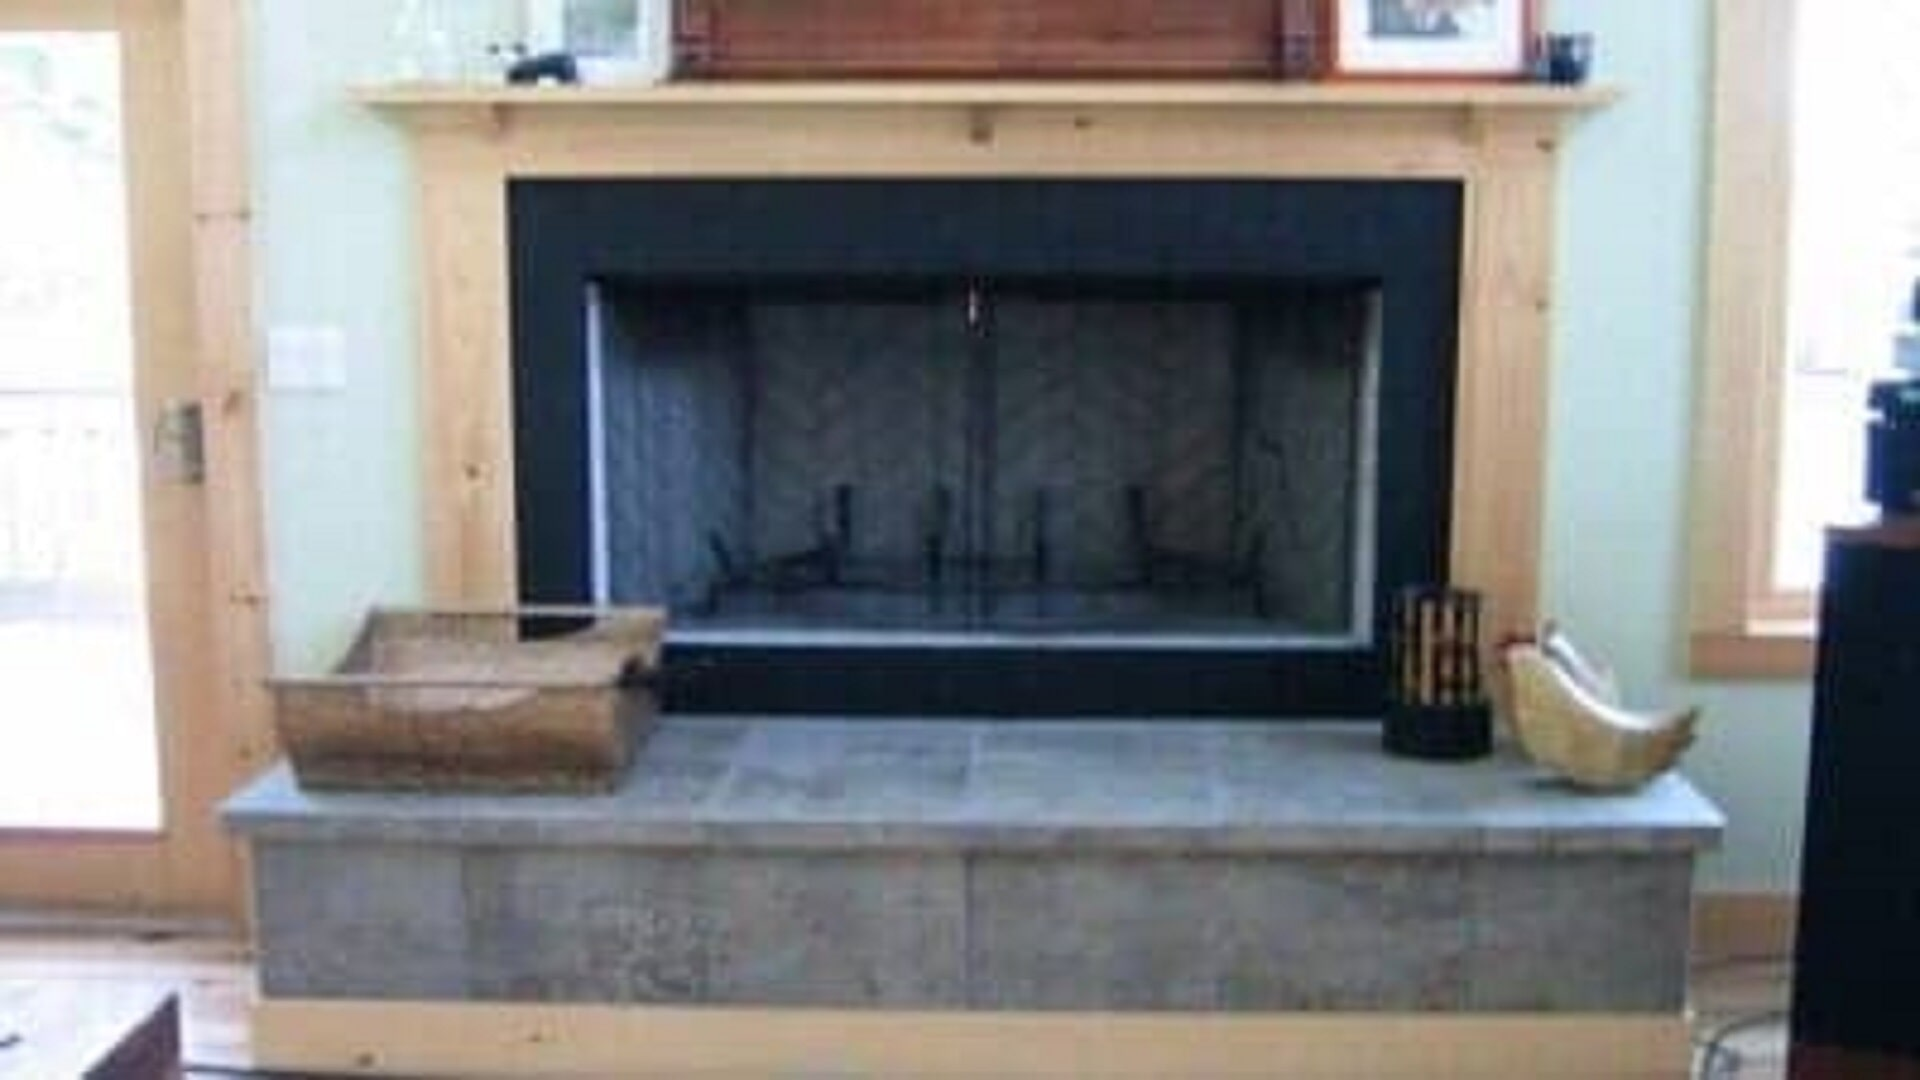 fan unit lopi temco com castings dp rotom blower fireplace majestic durablow replacement for monessen amazon insert vermont